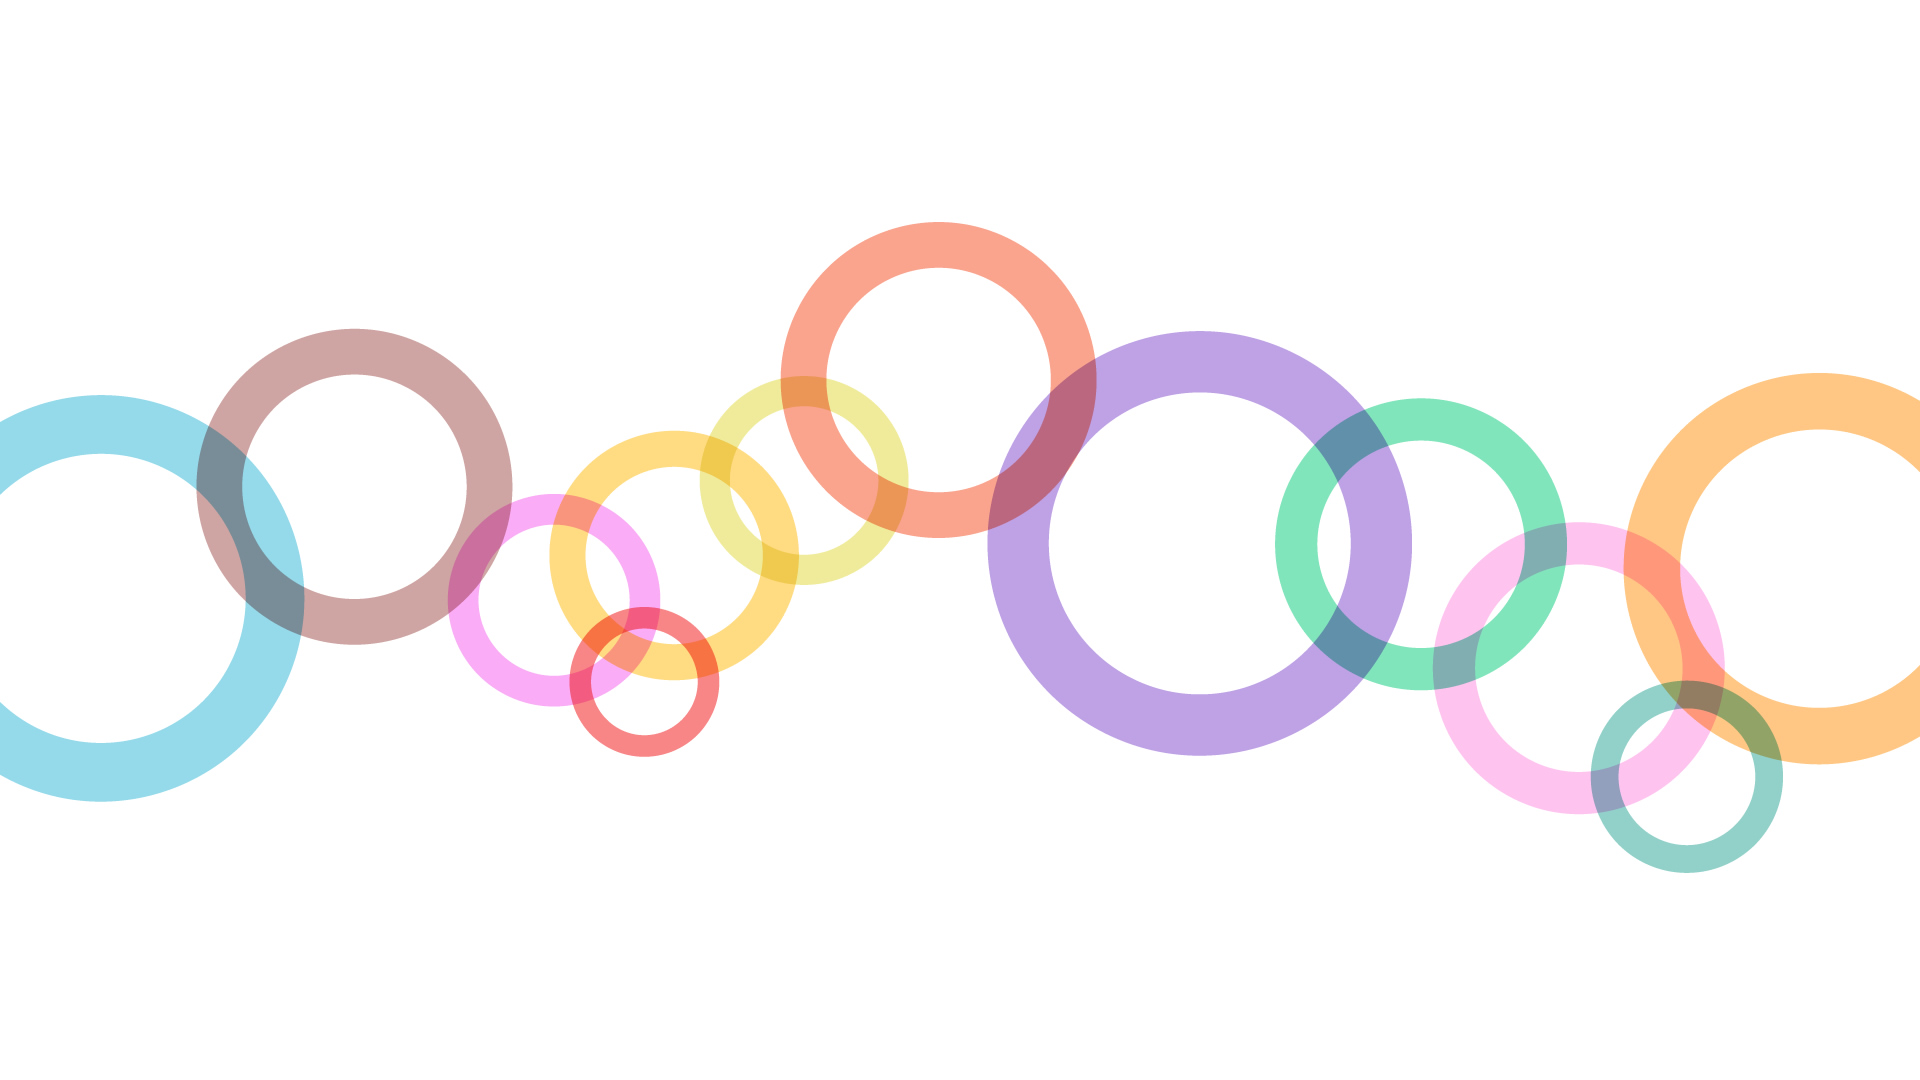 Circle line the lot / colorful / circle - Background Image - Free Download